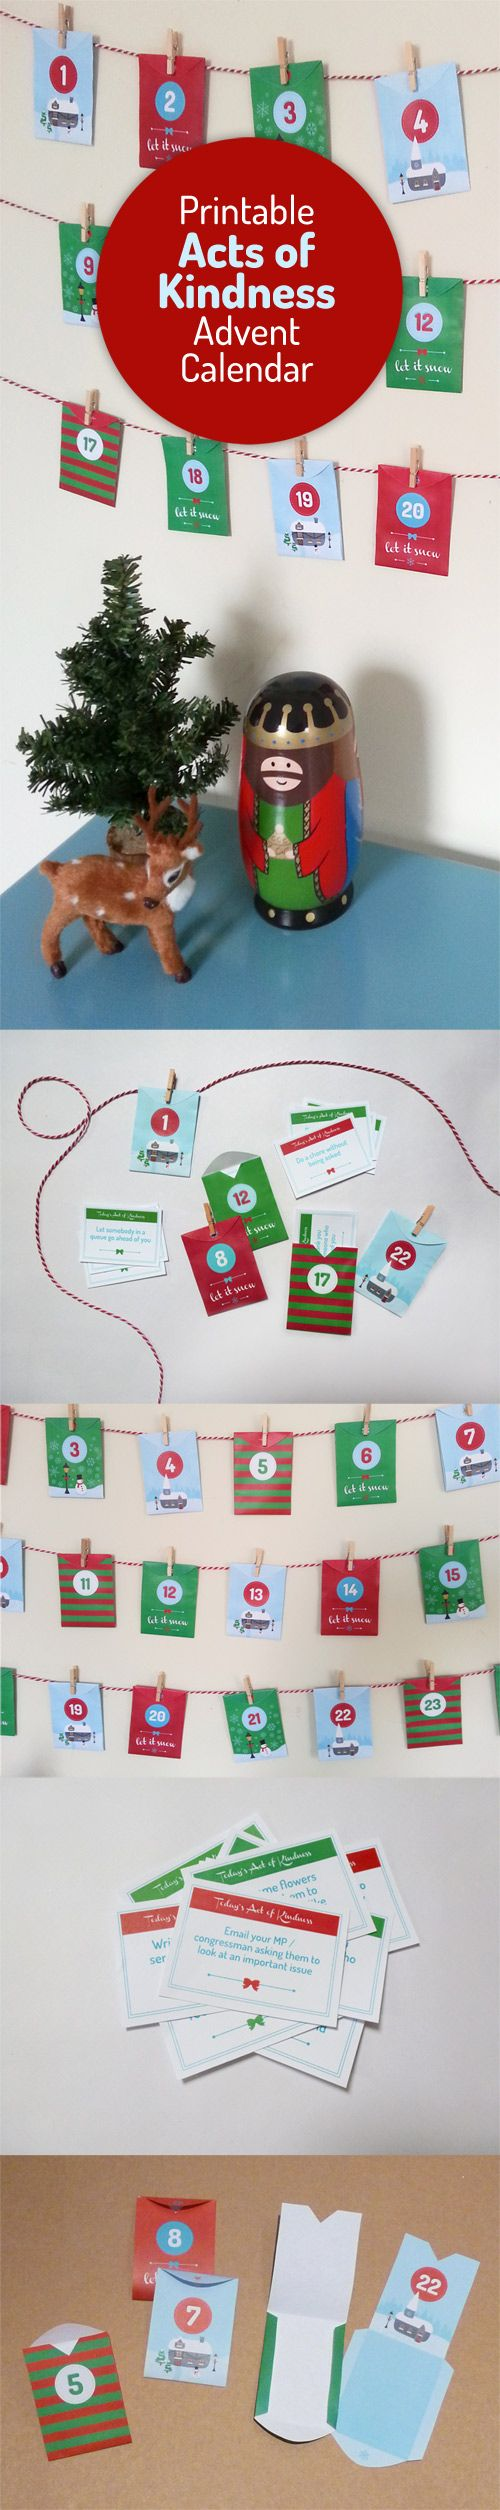 Acts of Kindness DIY Advent Calendar - little printable #Christmas envelopes with 24 daily good deeds cards. Alternative advent!